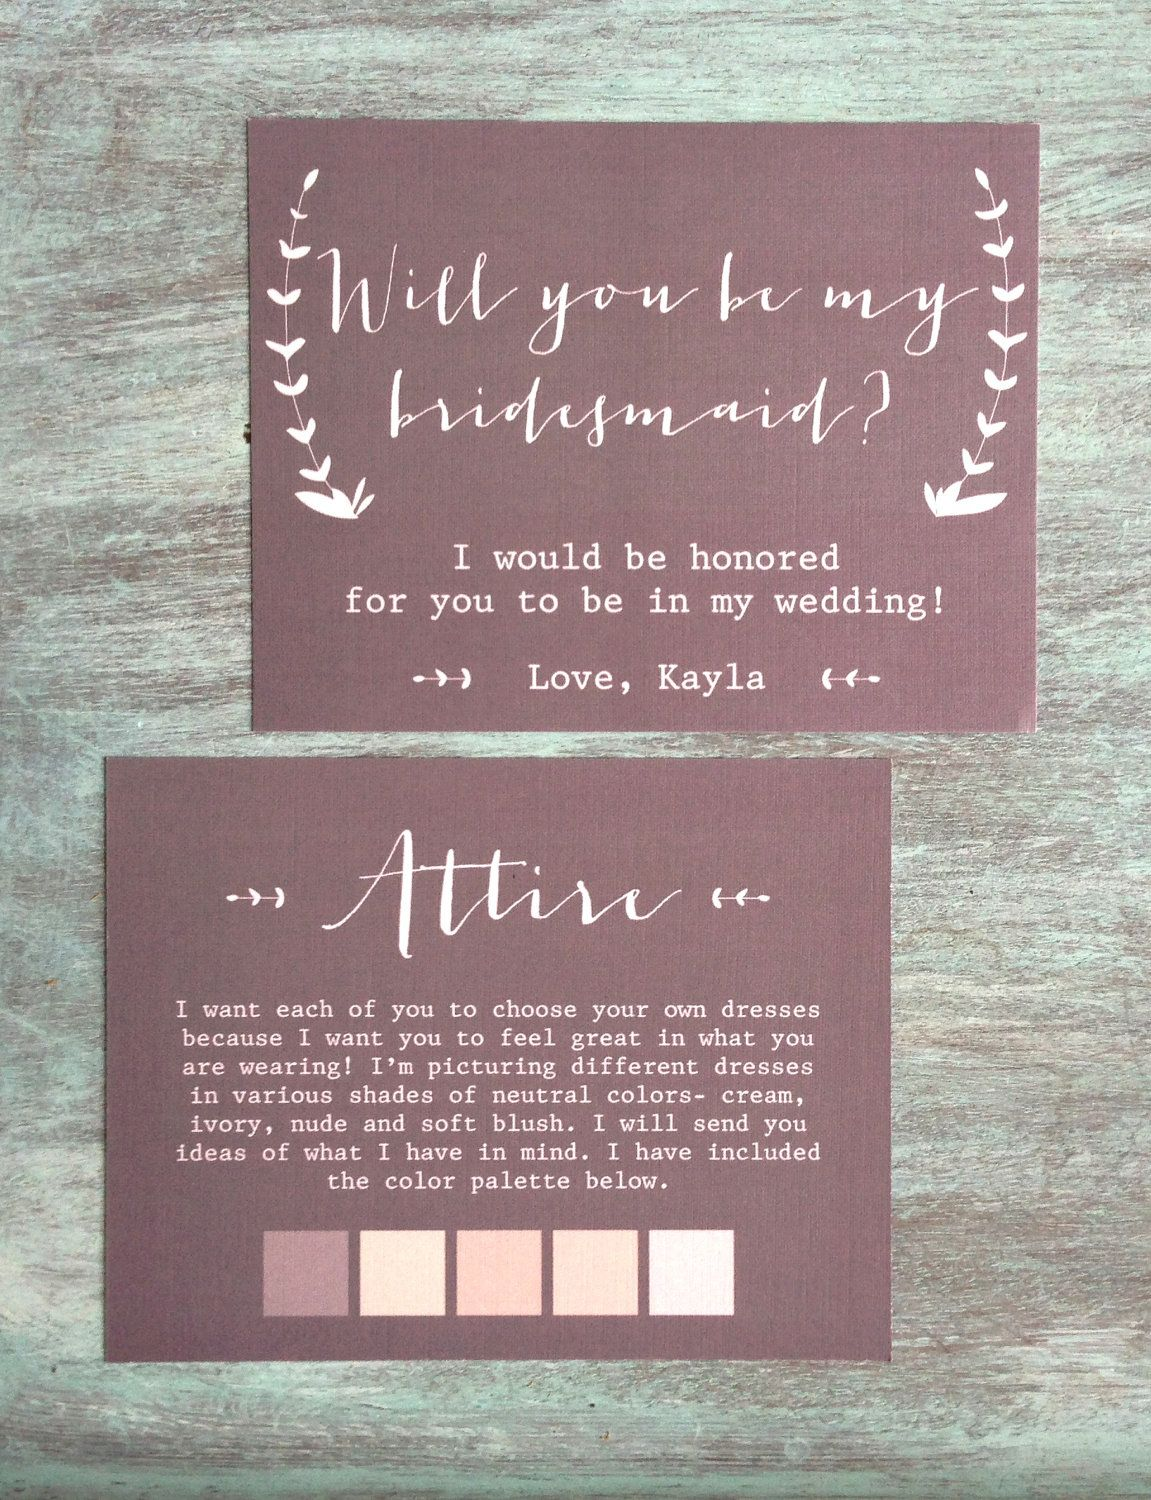 Will you be my bridesmaid maid of honor matron of honor invitation these could not be any more amazing will you be my bridesmaid cards and an stopboris Gallery